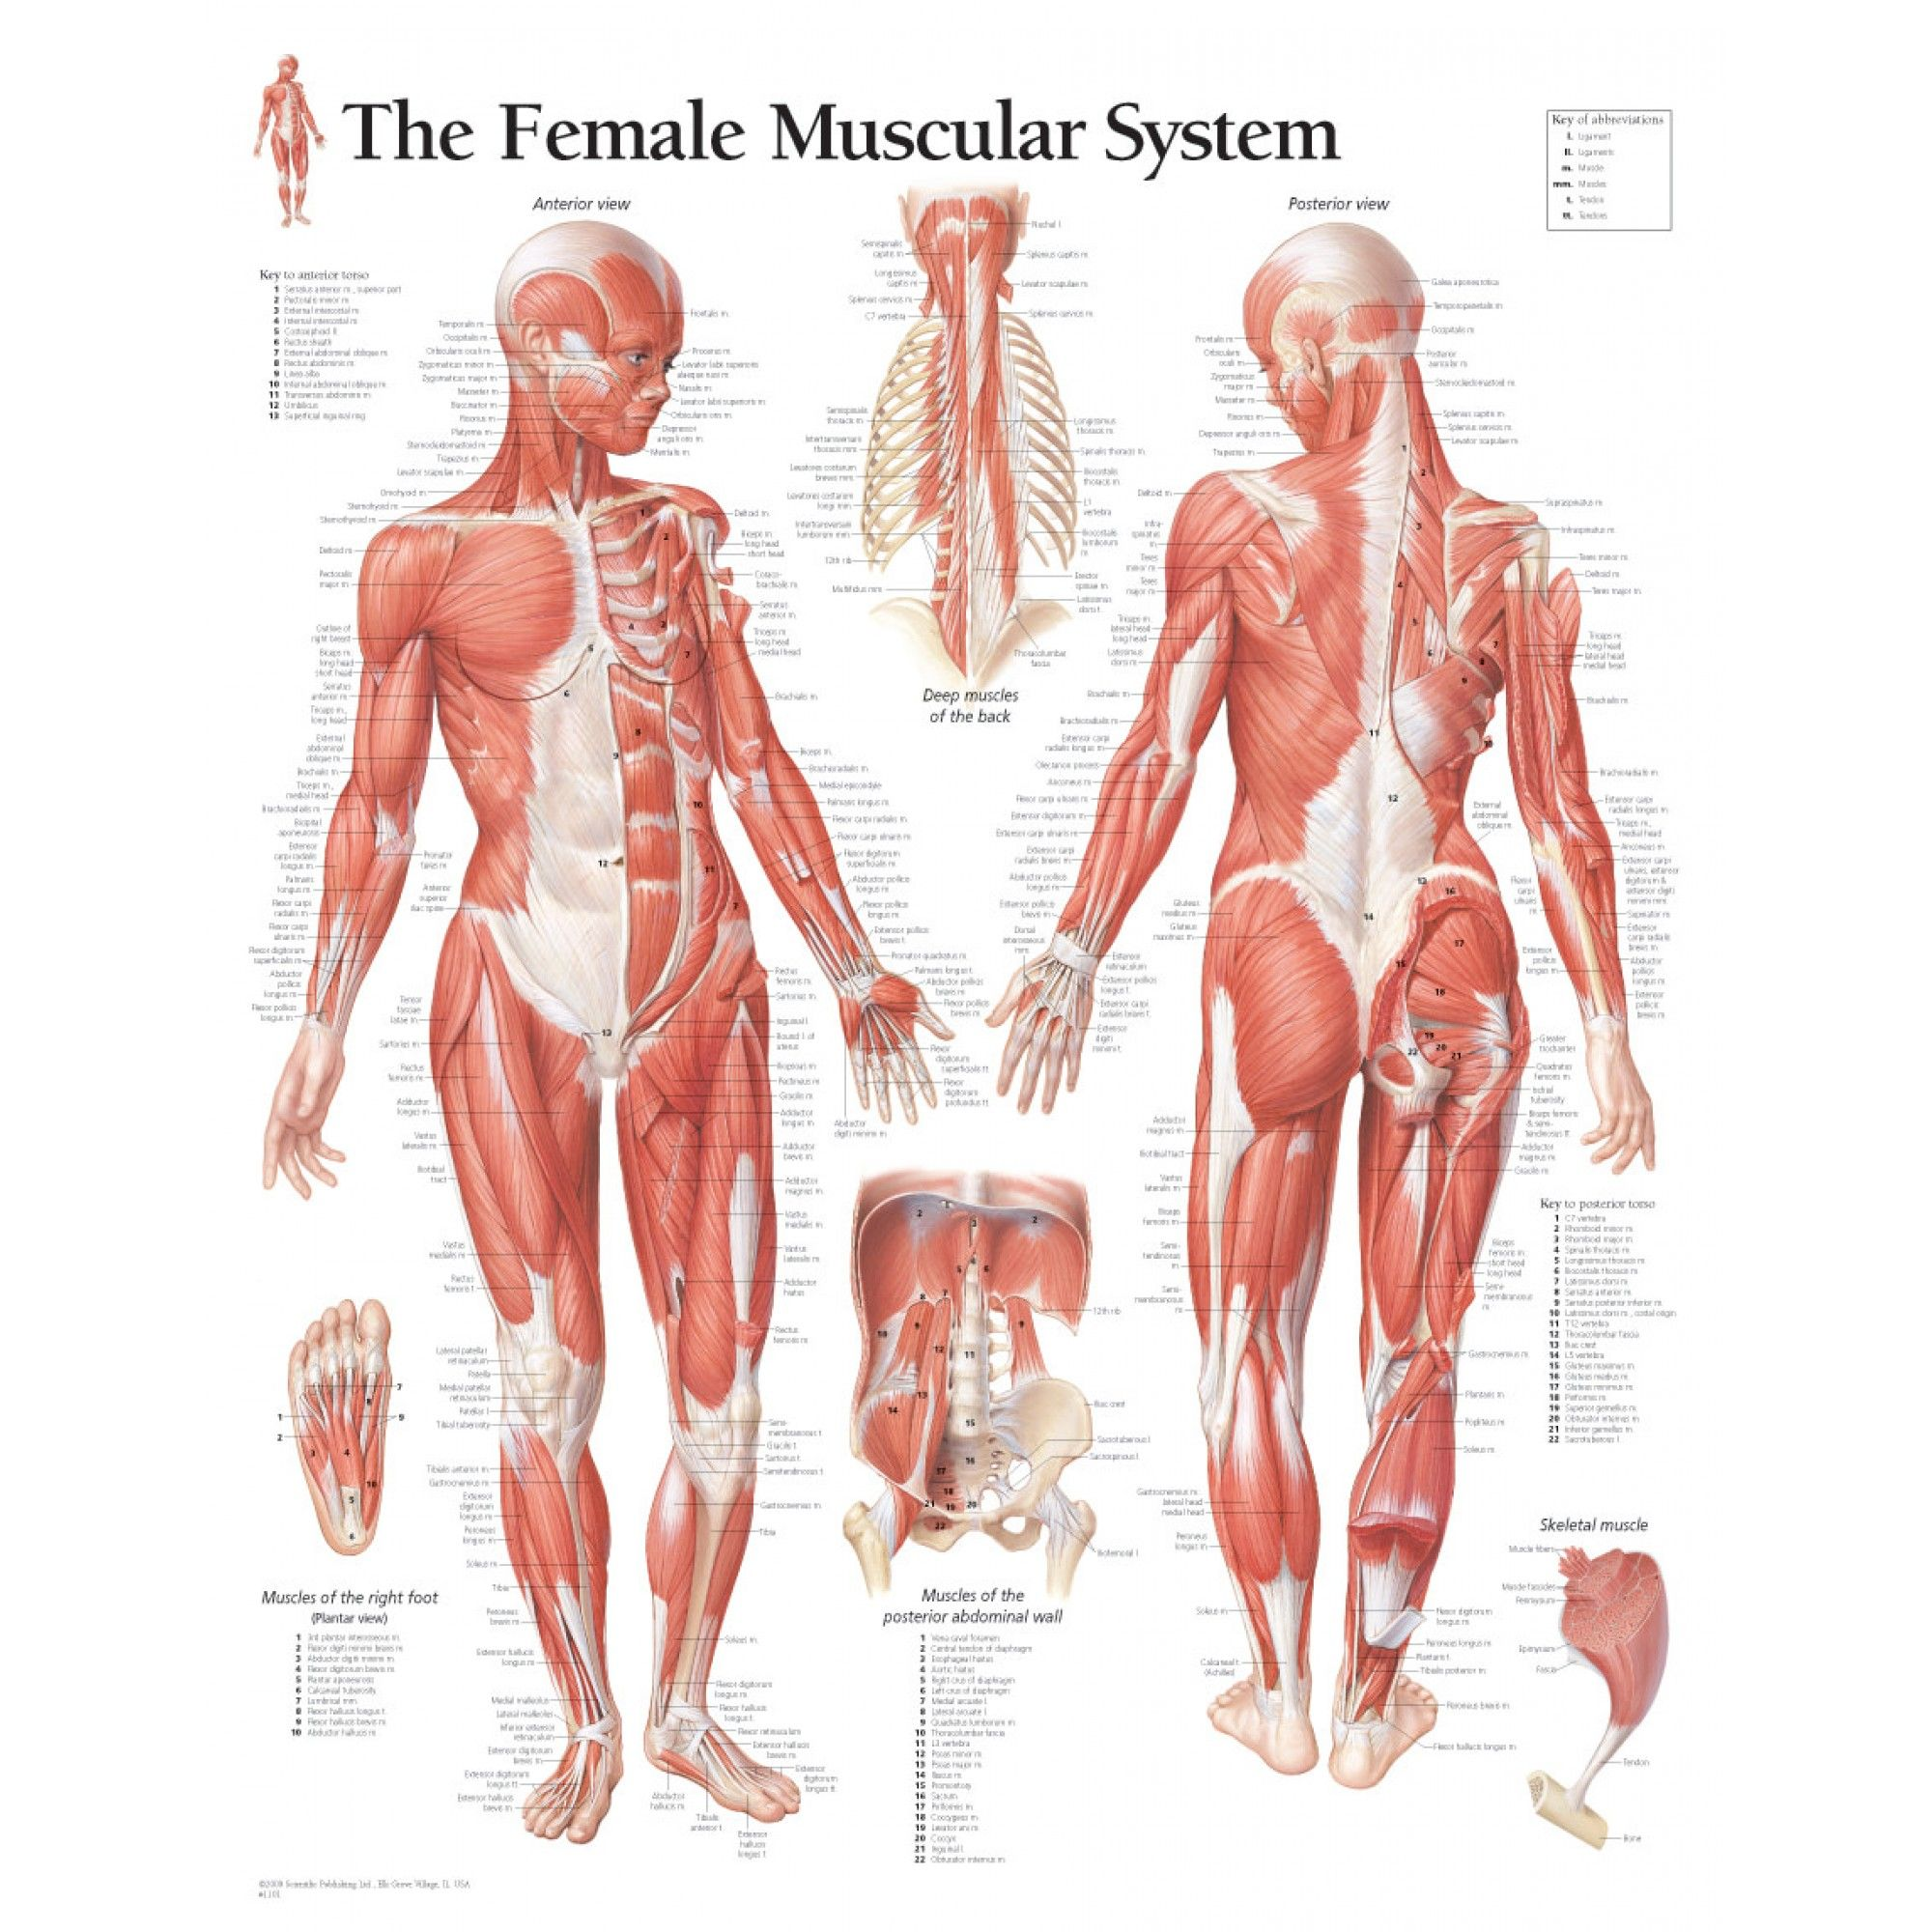 muscular system anatomical chart hd - google search | anatomy, Muscles